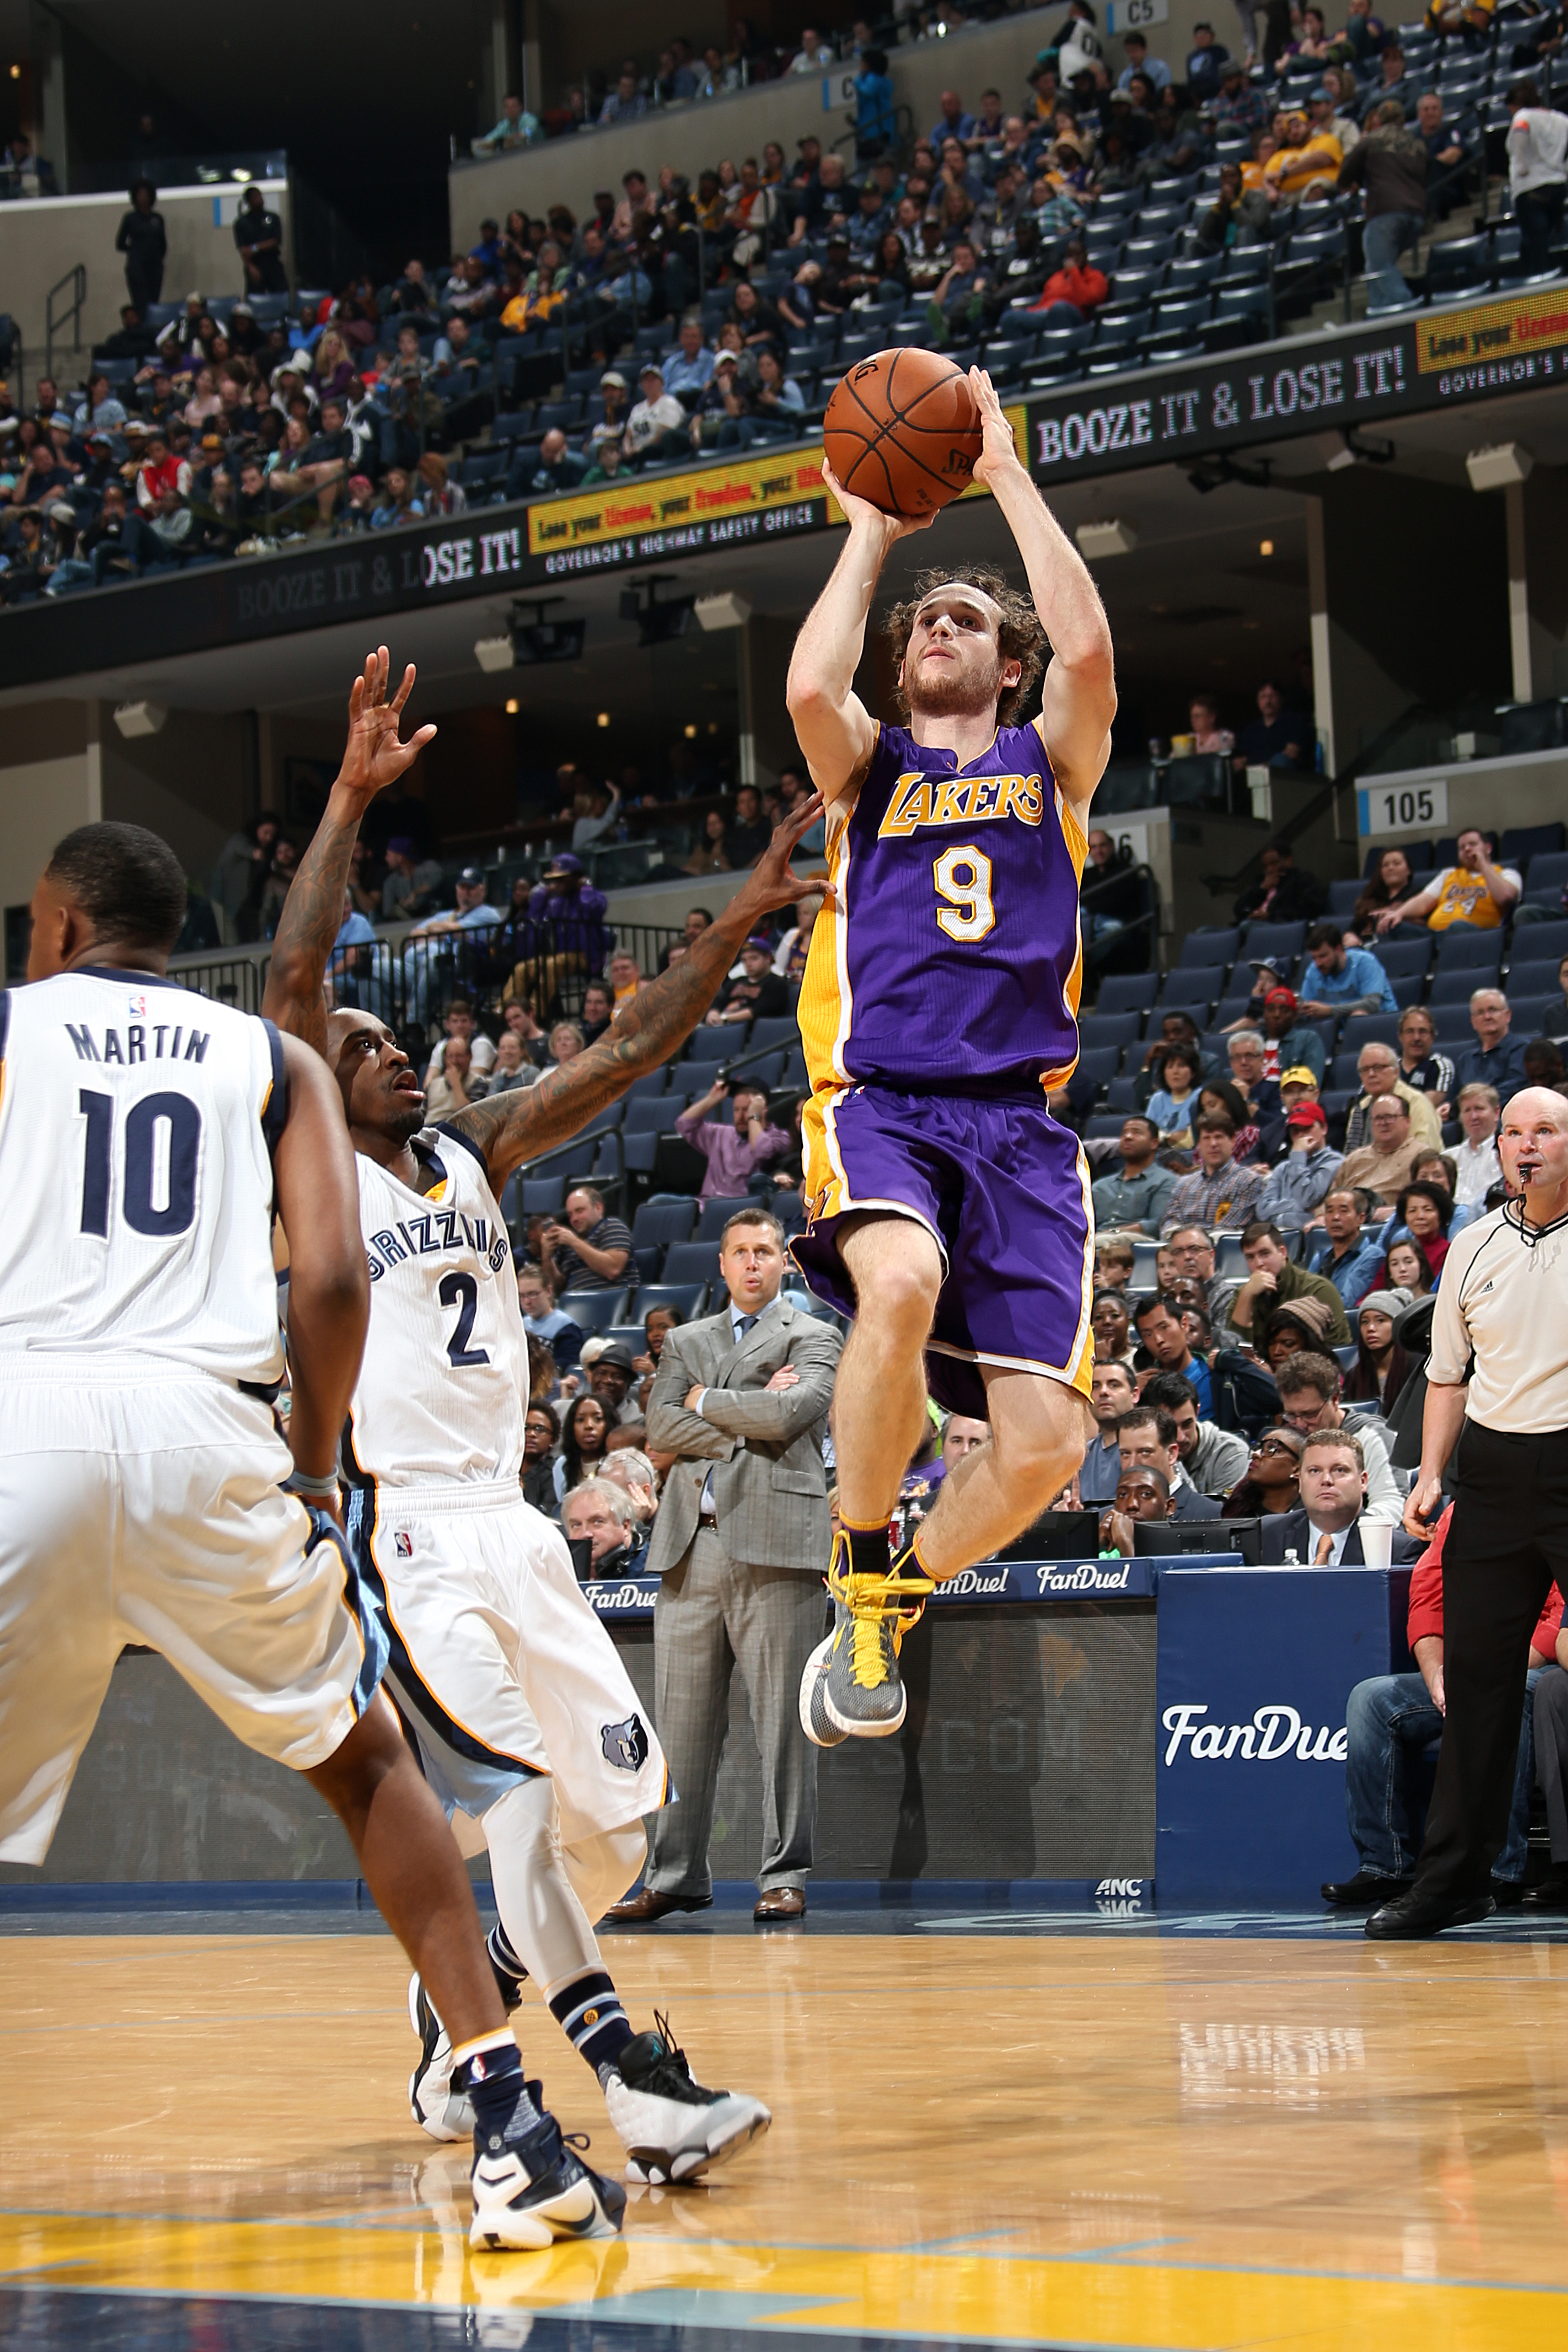 MEMPHIS, TN - DECEMBER 27: Marcelo Huertas #9 of the Los Angeles Lakers shoots the ball during the game against the Memphis Grizzlies on December 27, 2015 at FedExForum in Memphis, Tennessee. (Photo by Joe Murphy/NBAE via Getty Images)